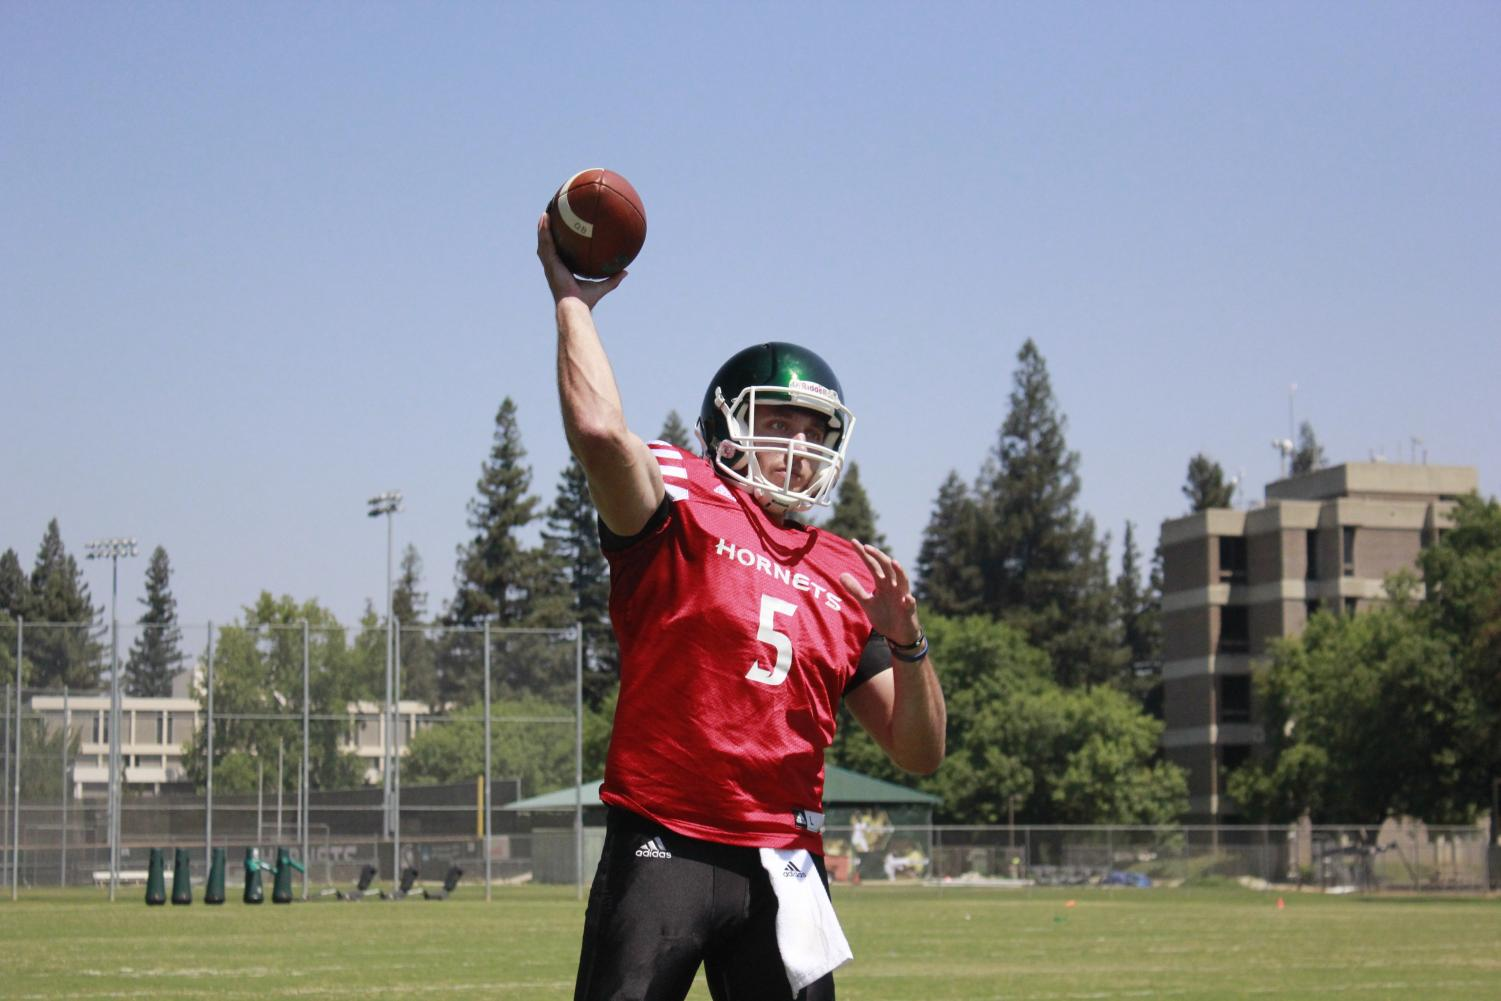 Sacramento State senior quarterback Kevin Thomson throwing a pass during practice Aug. 15. Thomson scored 26 touchdowns while turning the ball over just three times a season ago.